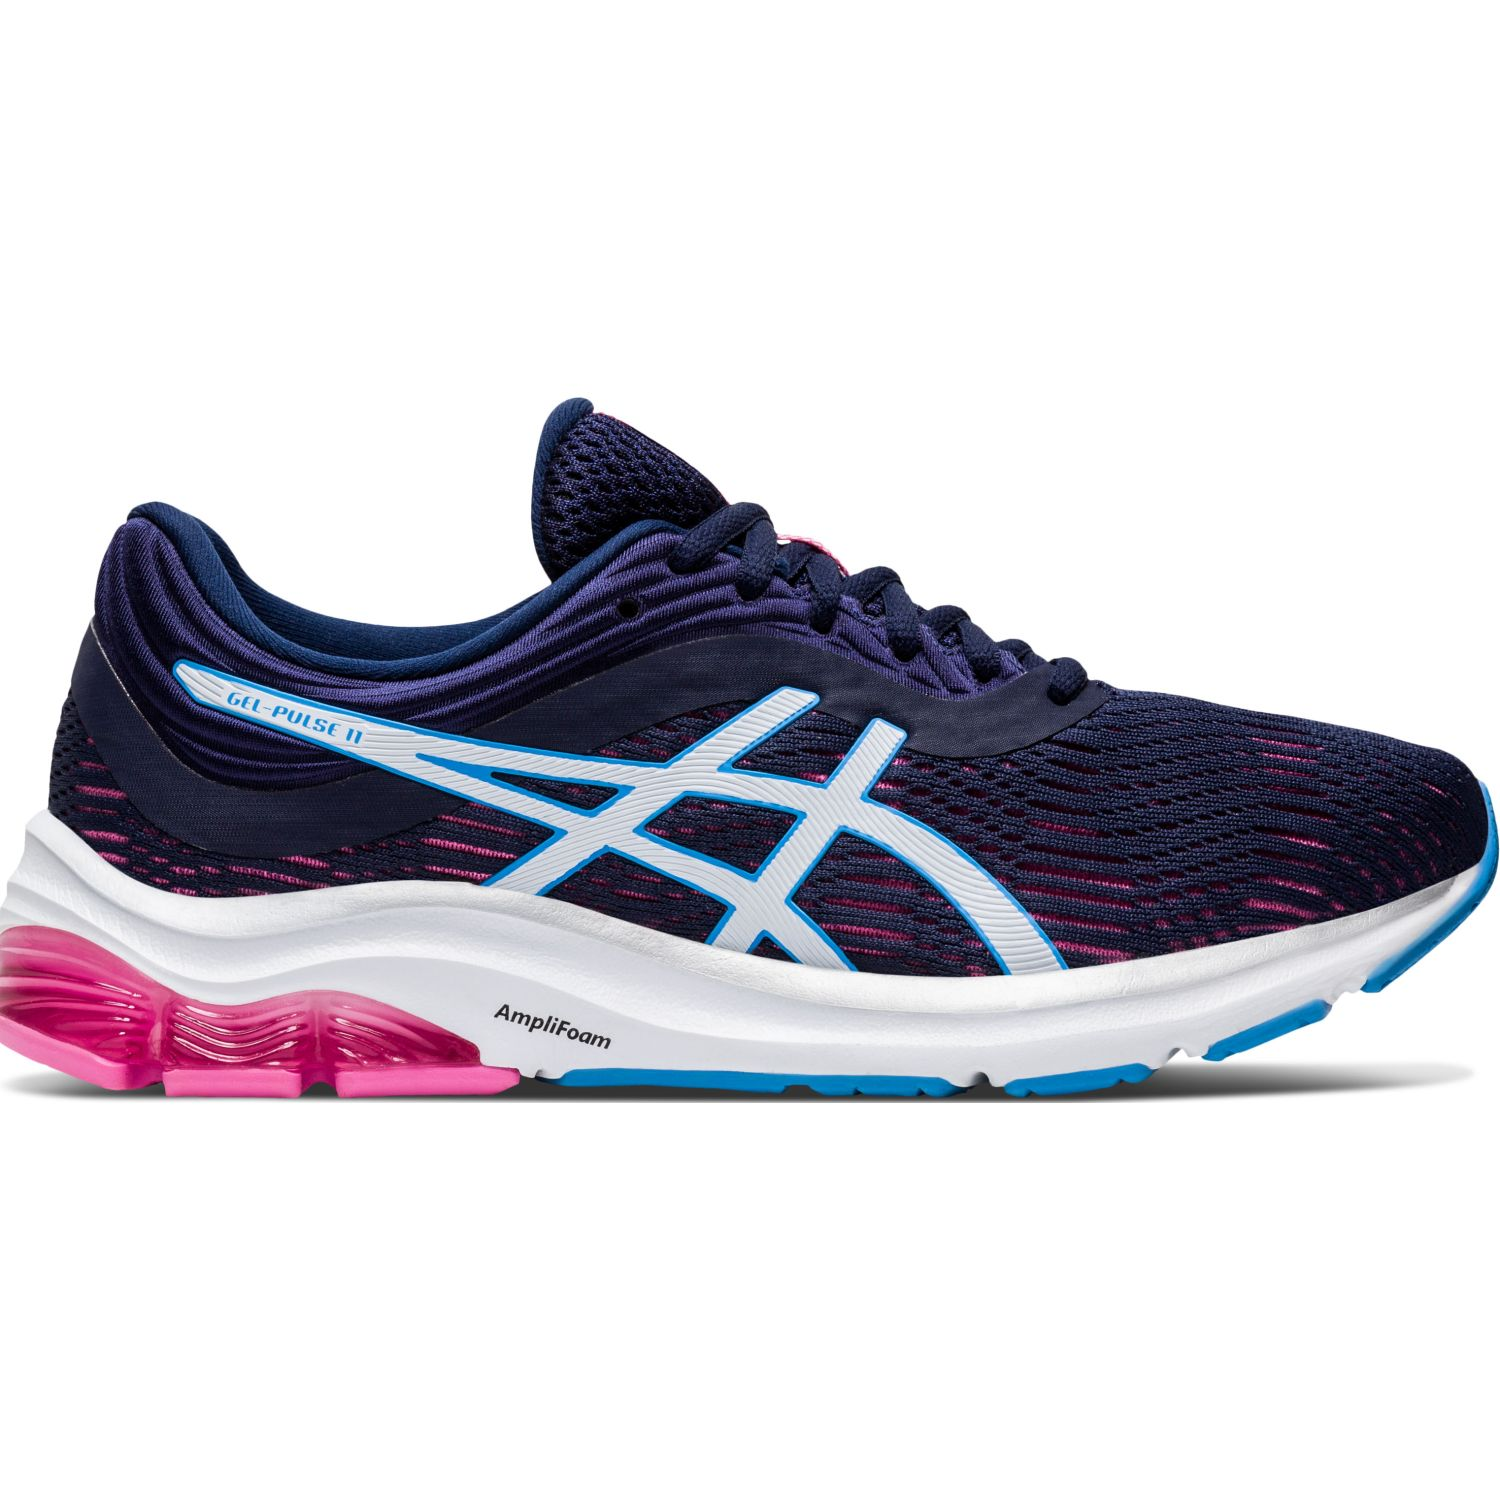 Asics Gel-Pulse 11 Azul / blanco Running en pista